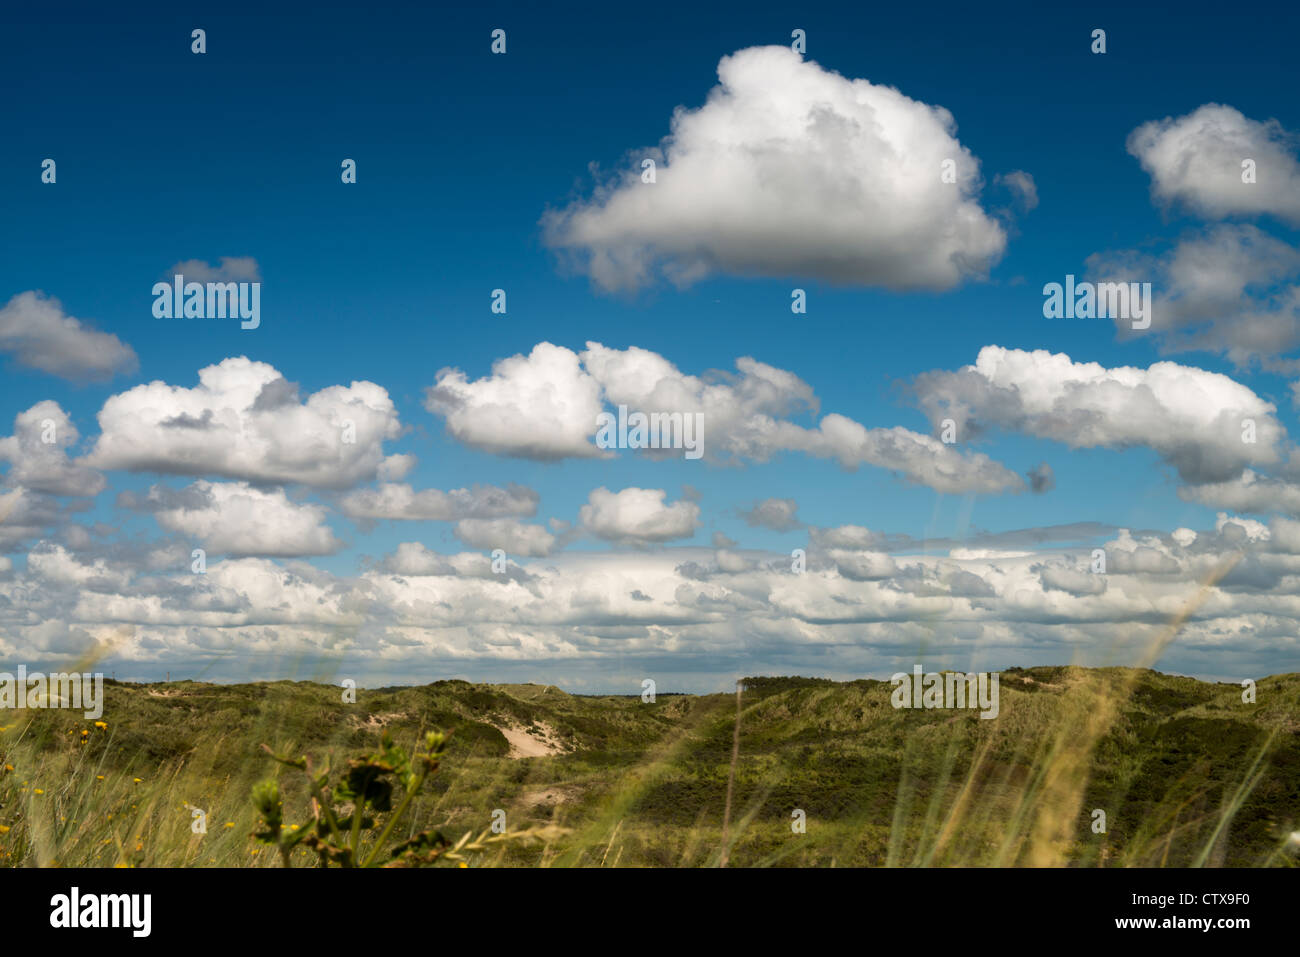 Wolkenhimmel mit Wiese, sky with clouds over meadow - Stock Image